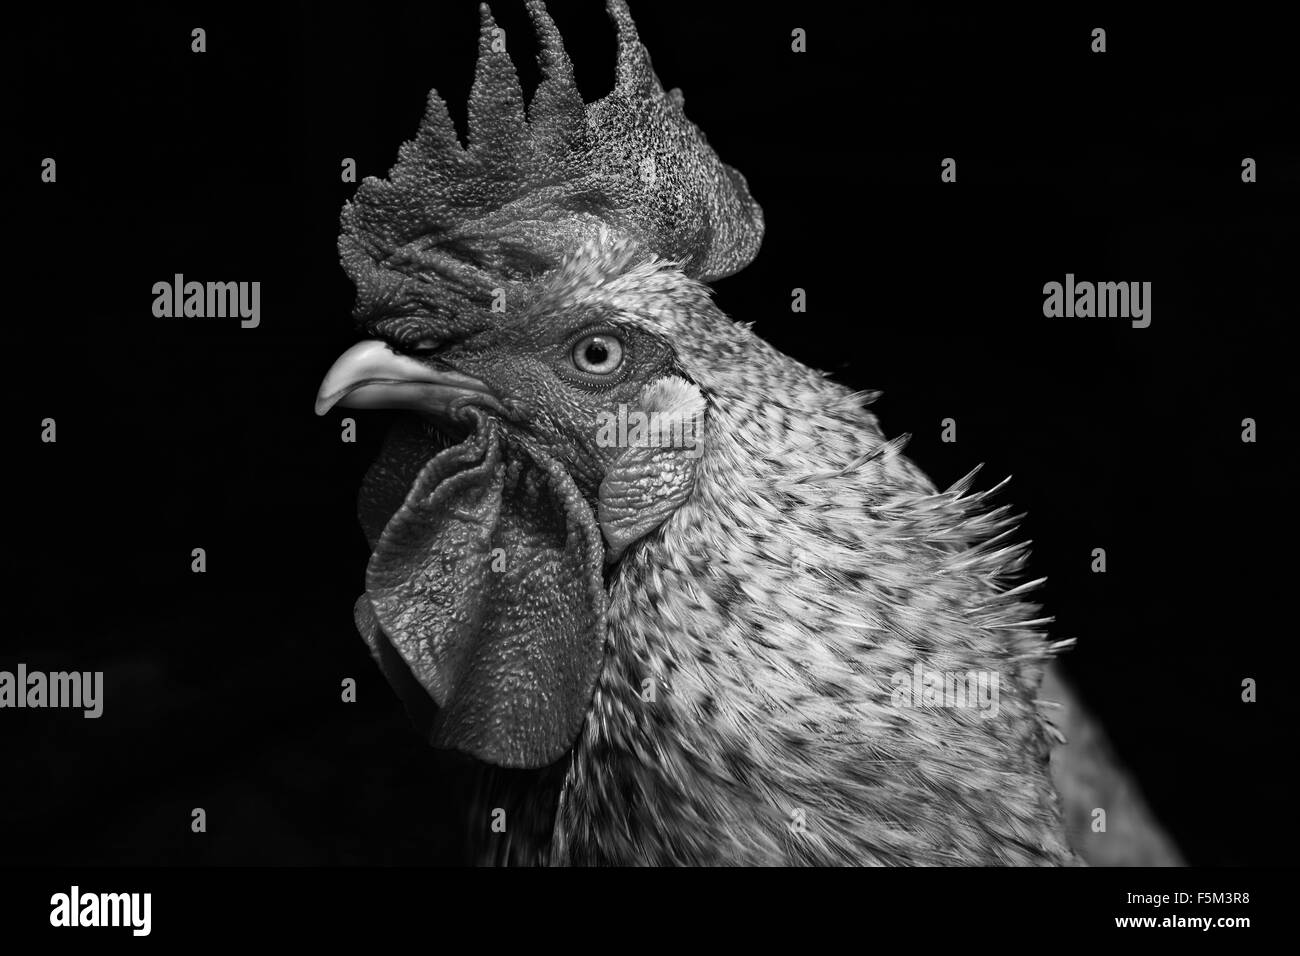 Black and white portrait of rooster looking sideways - Stock Image